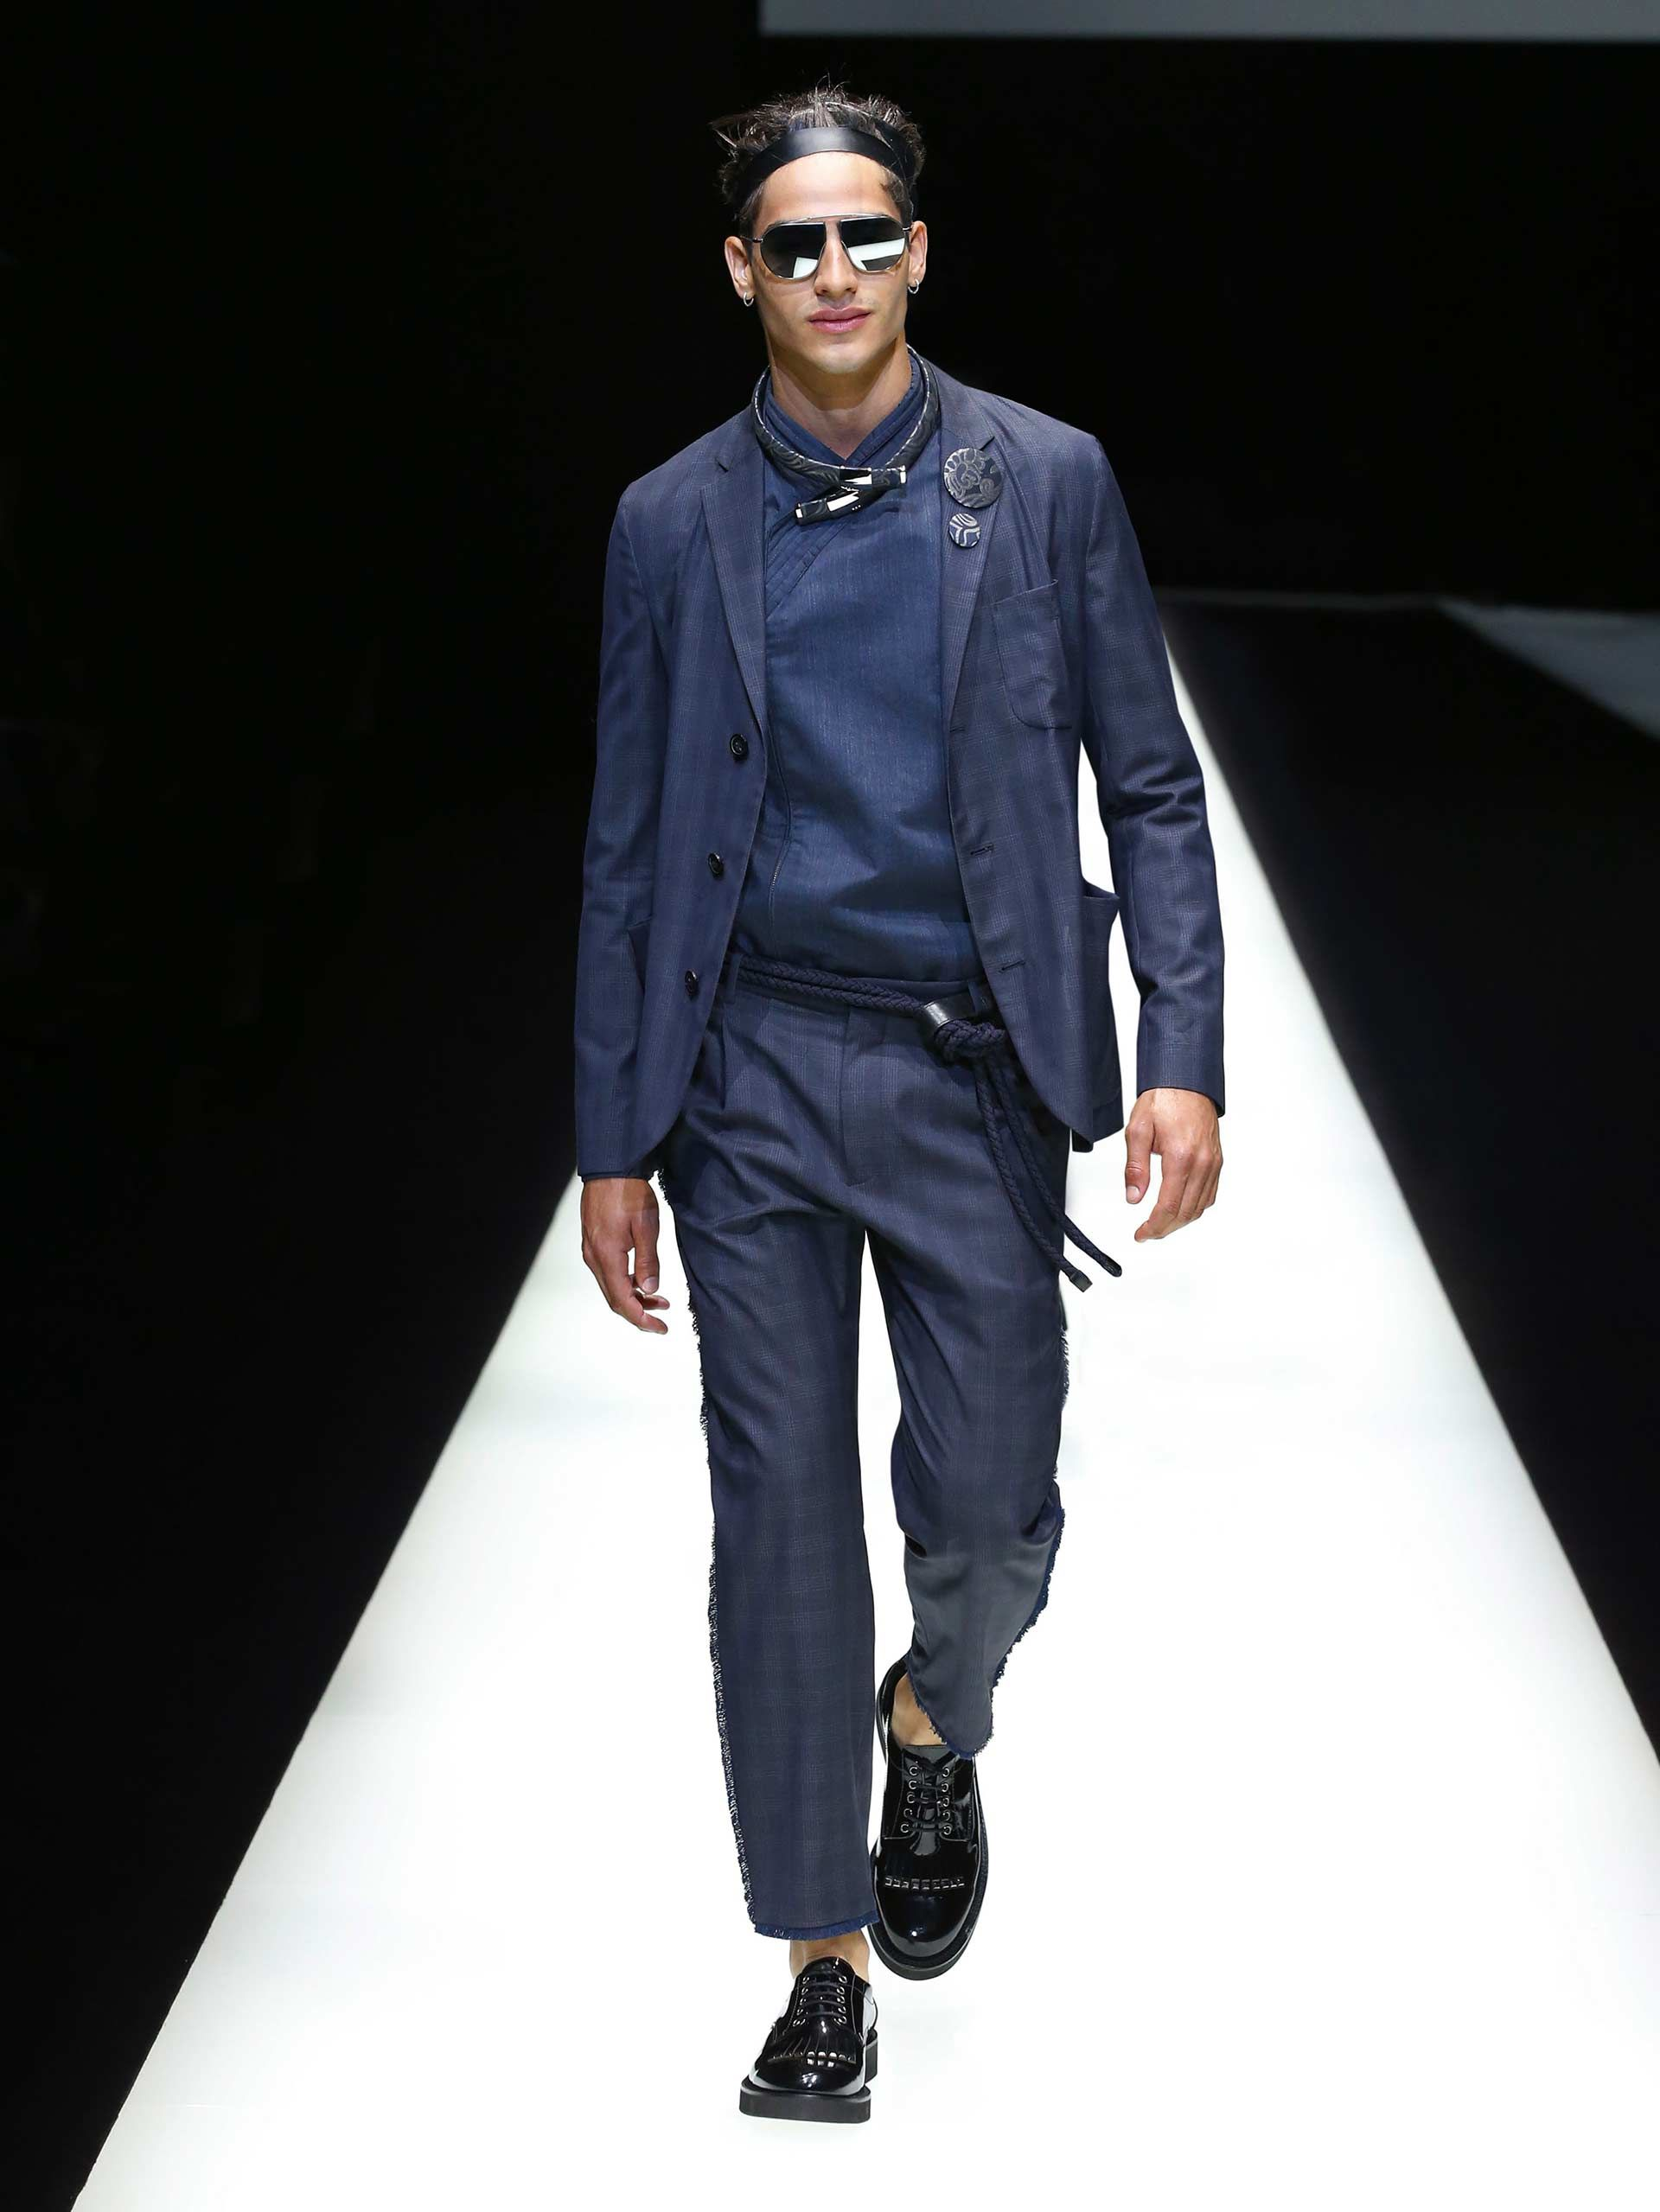 CATWALK LOOKS. Scroll through each look from the men s Spring Summer ... 64d0663d1e